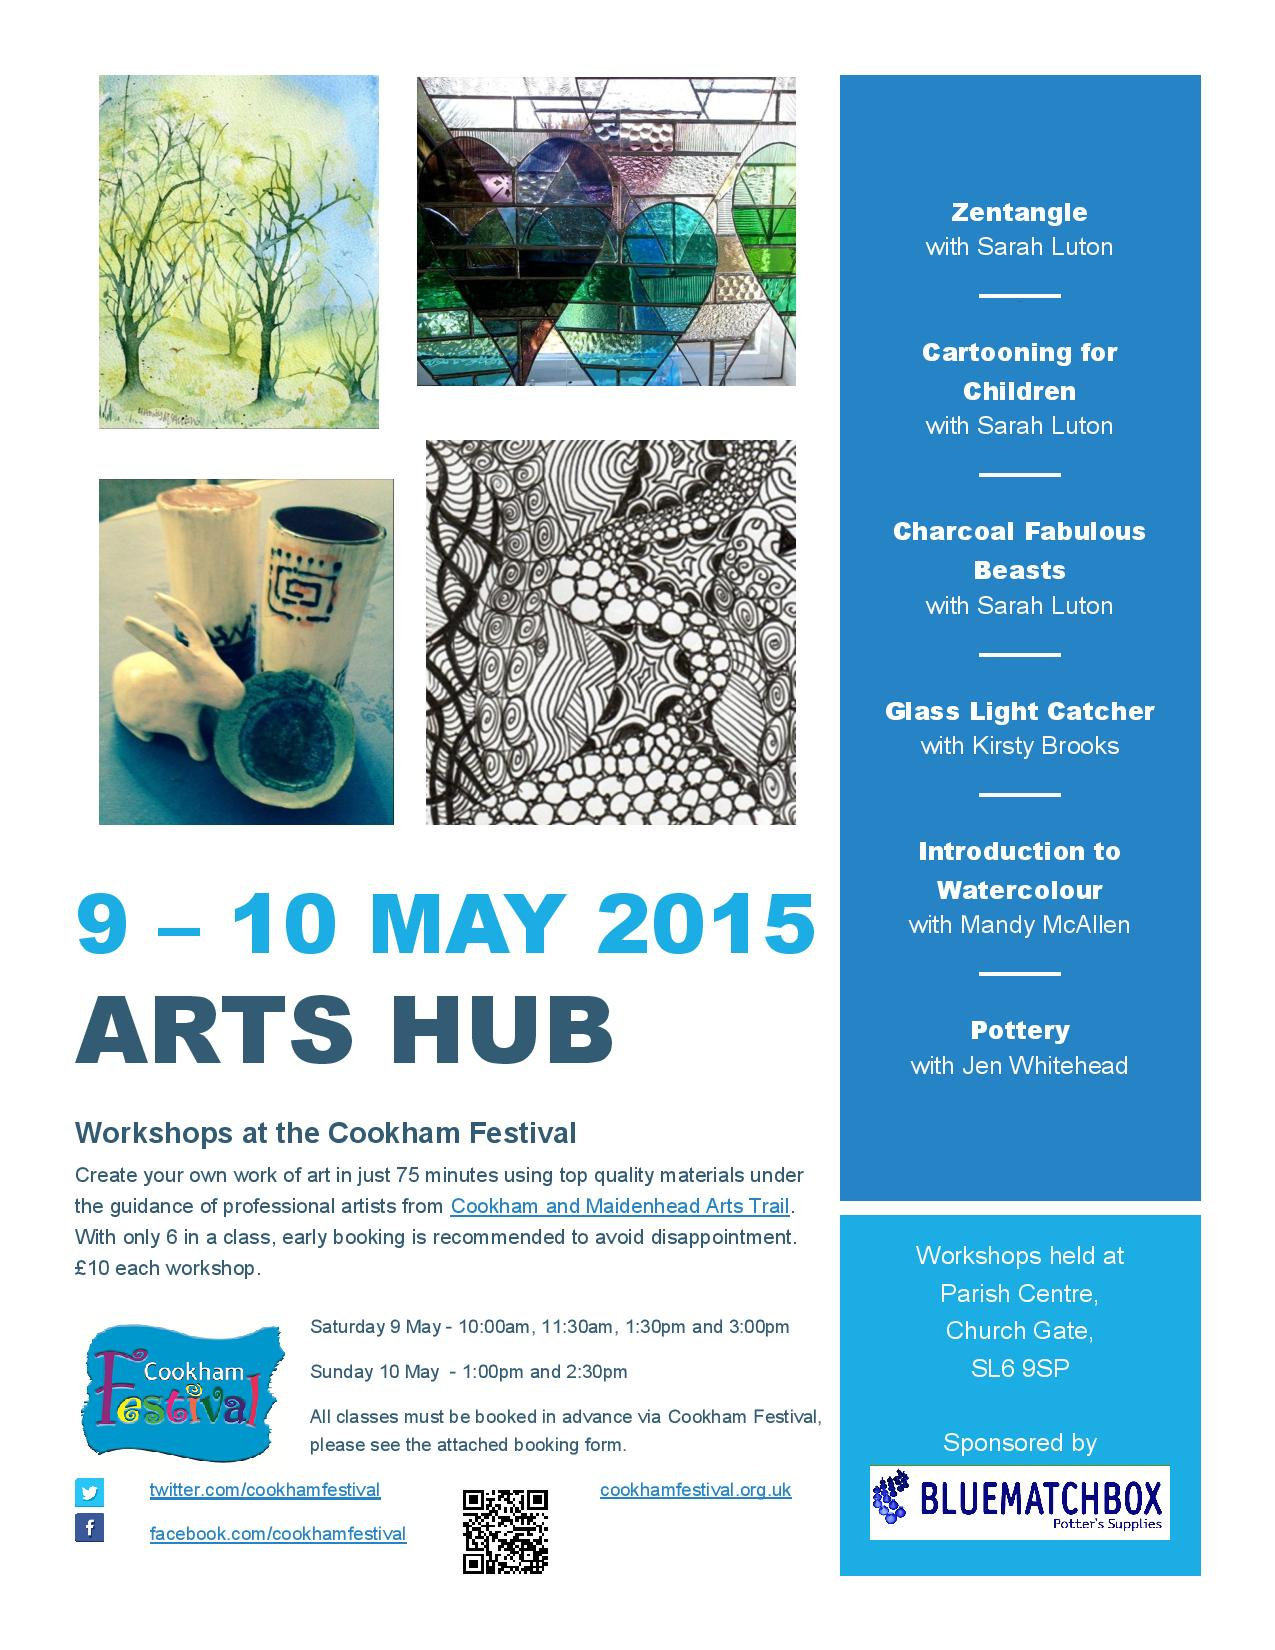 Cookham Festival Arts Hub Workshops